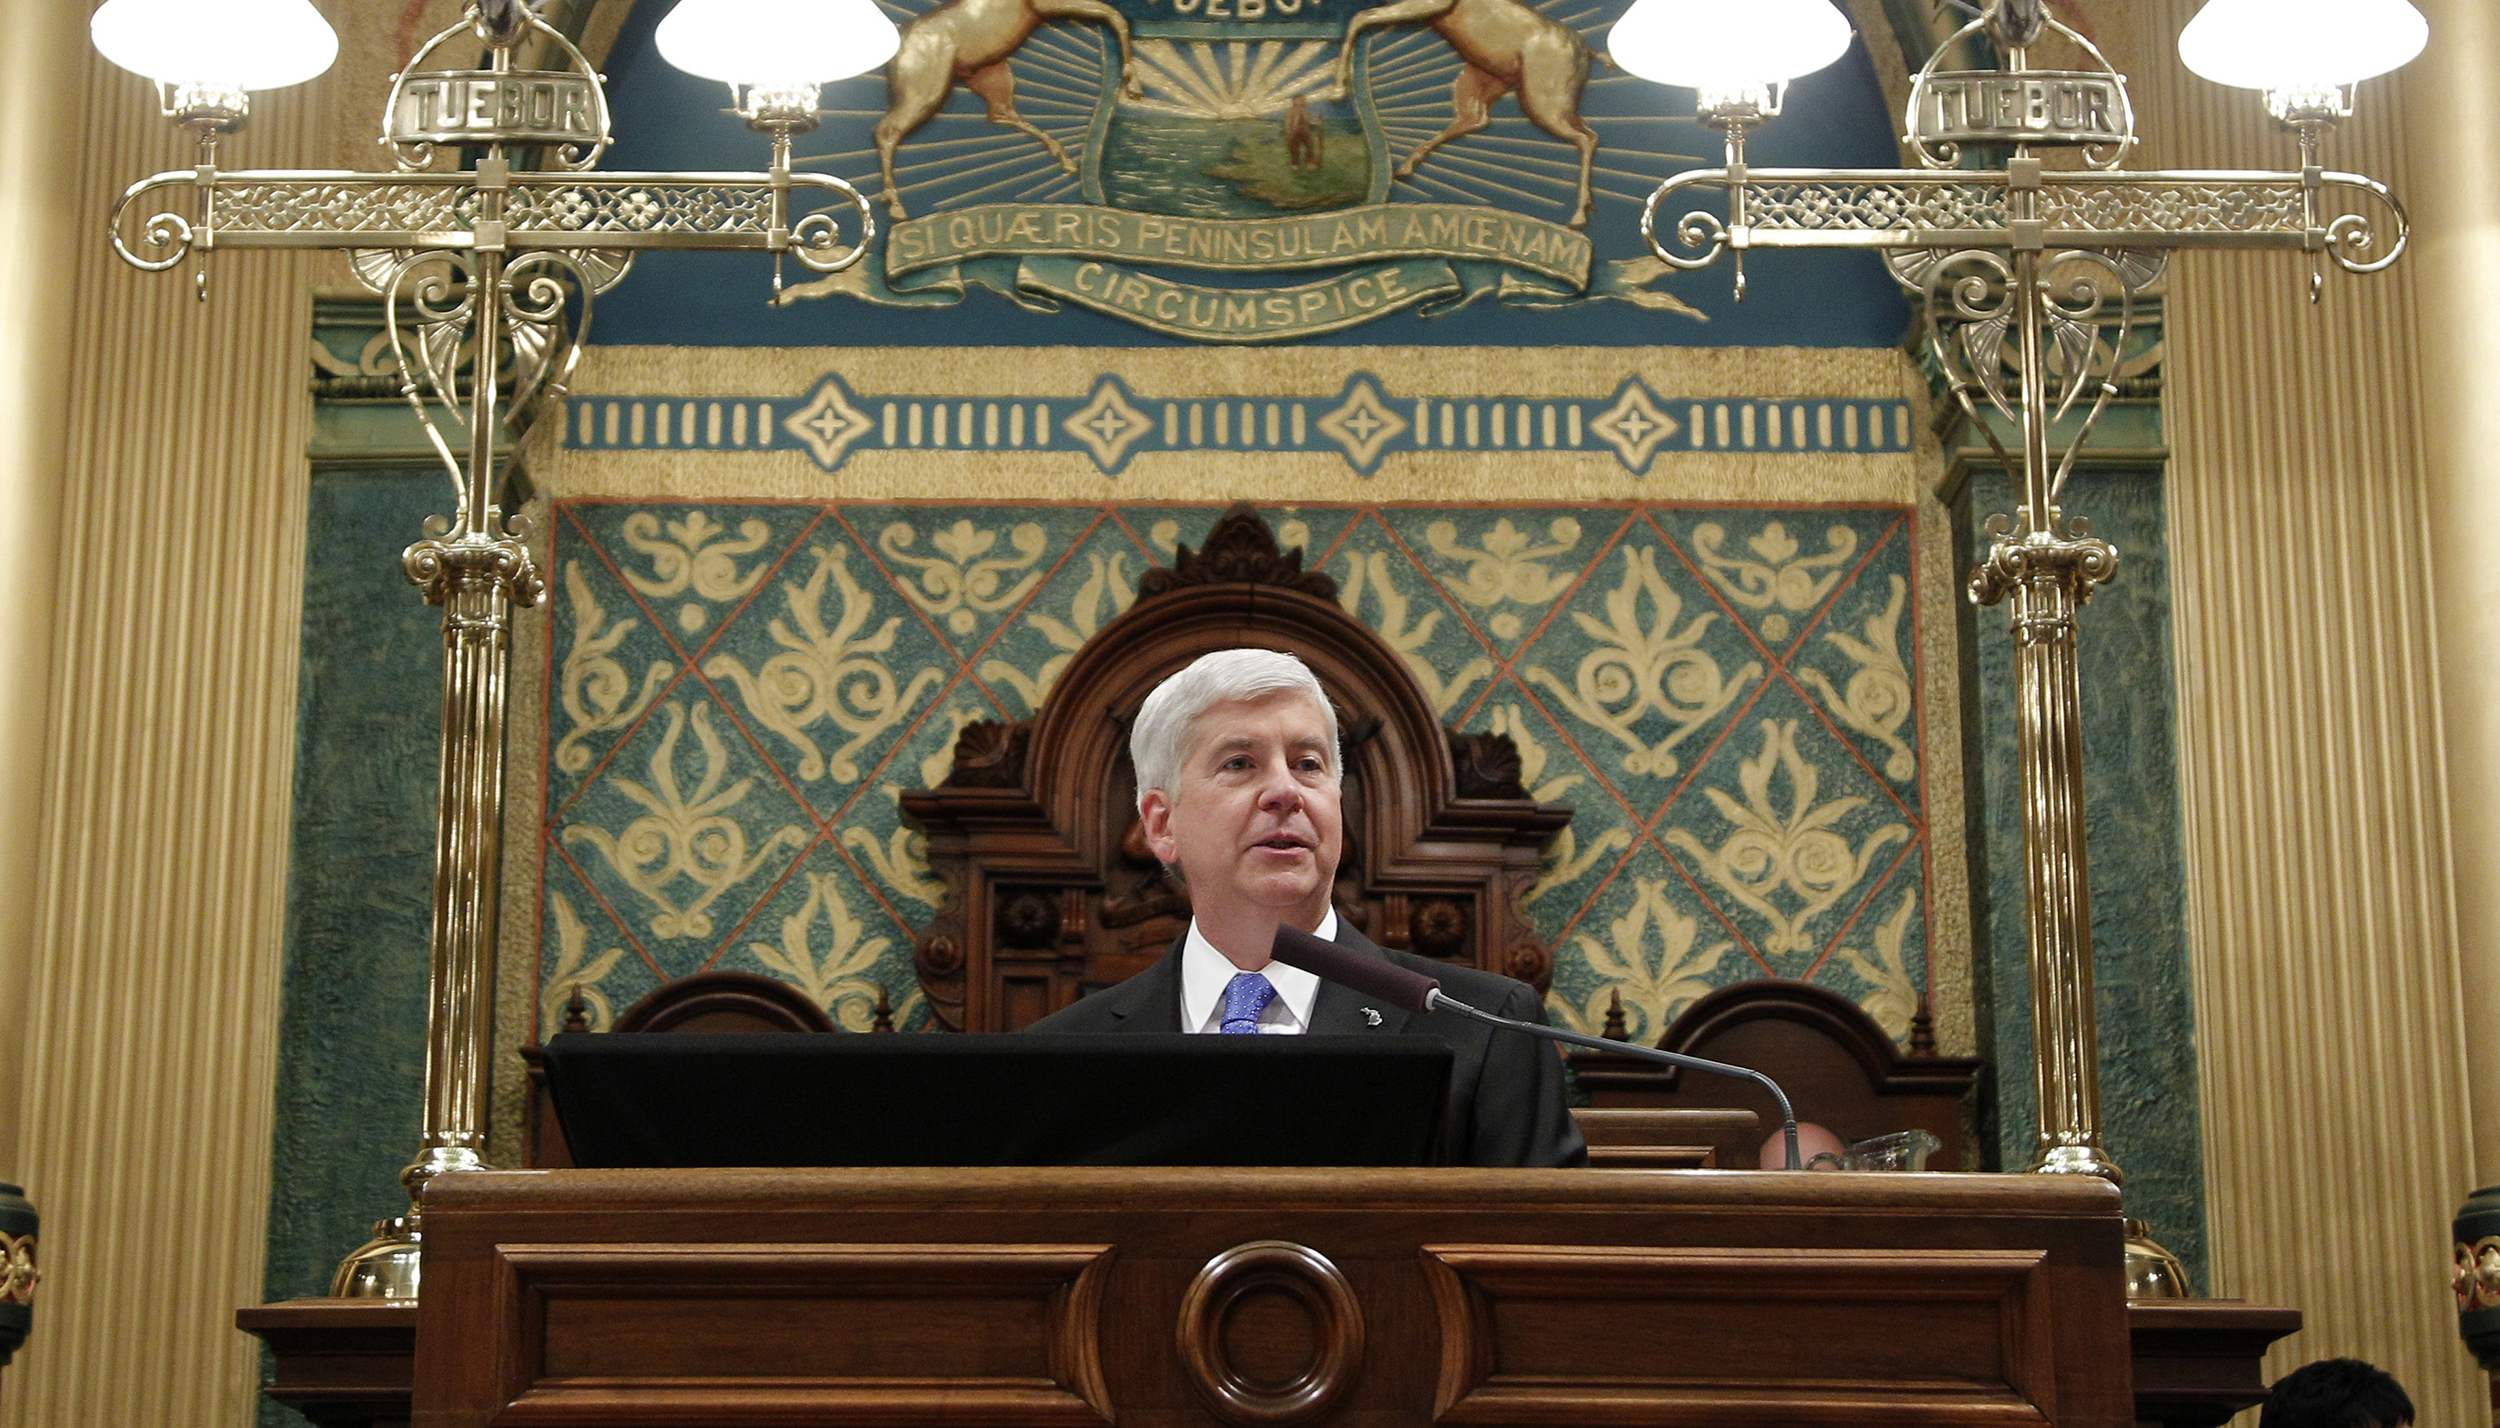 Former-Michigan-Gov.-Rick-Snyder-charged-in-Flint-water-crisis